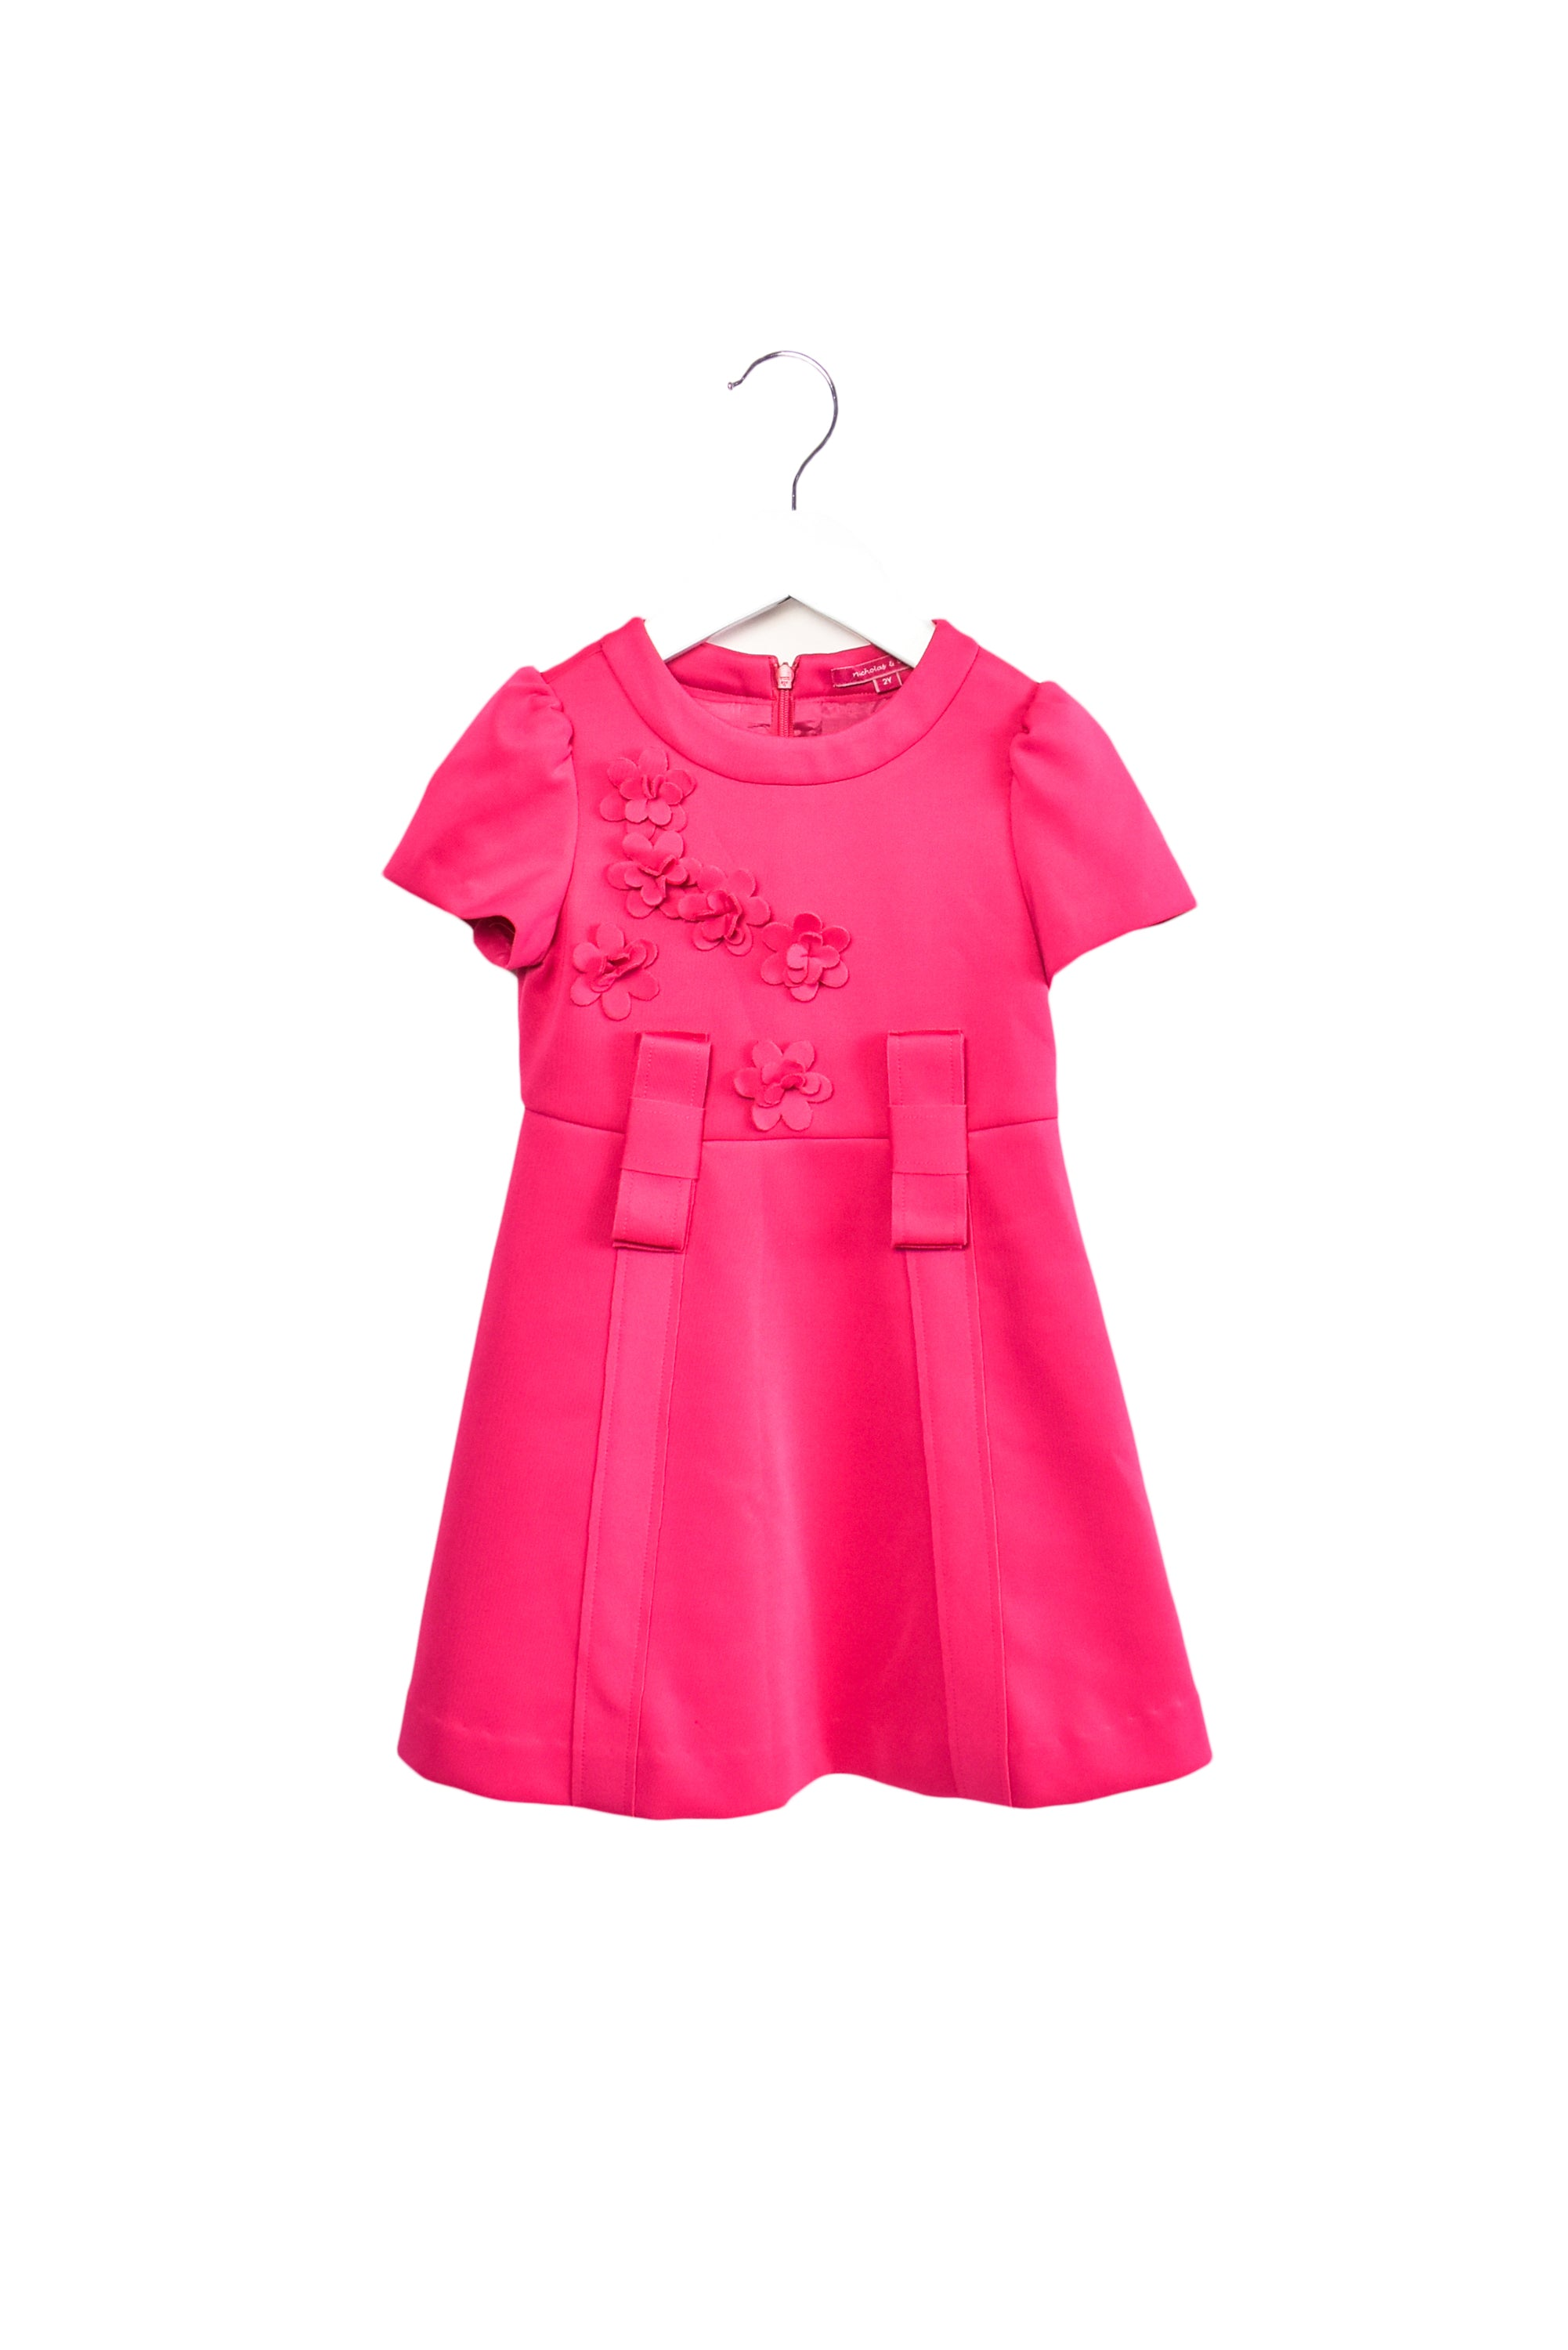 10013595 Nicholas & Bears Kids ~ Dress 2T at Retykle